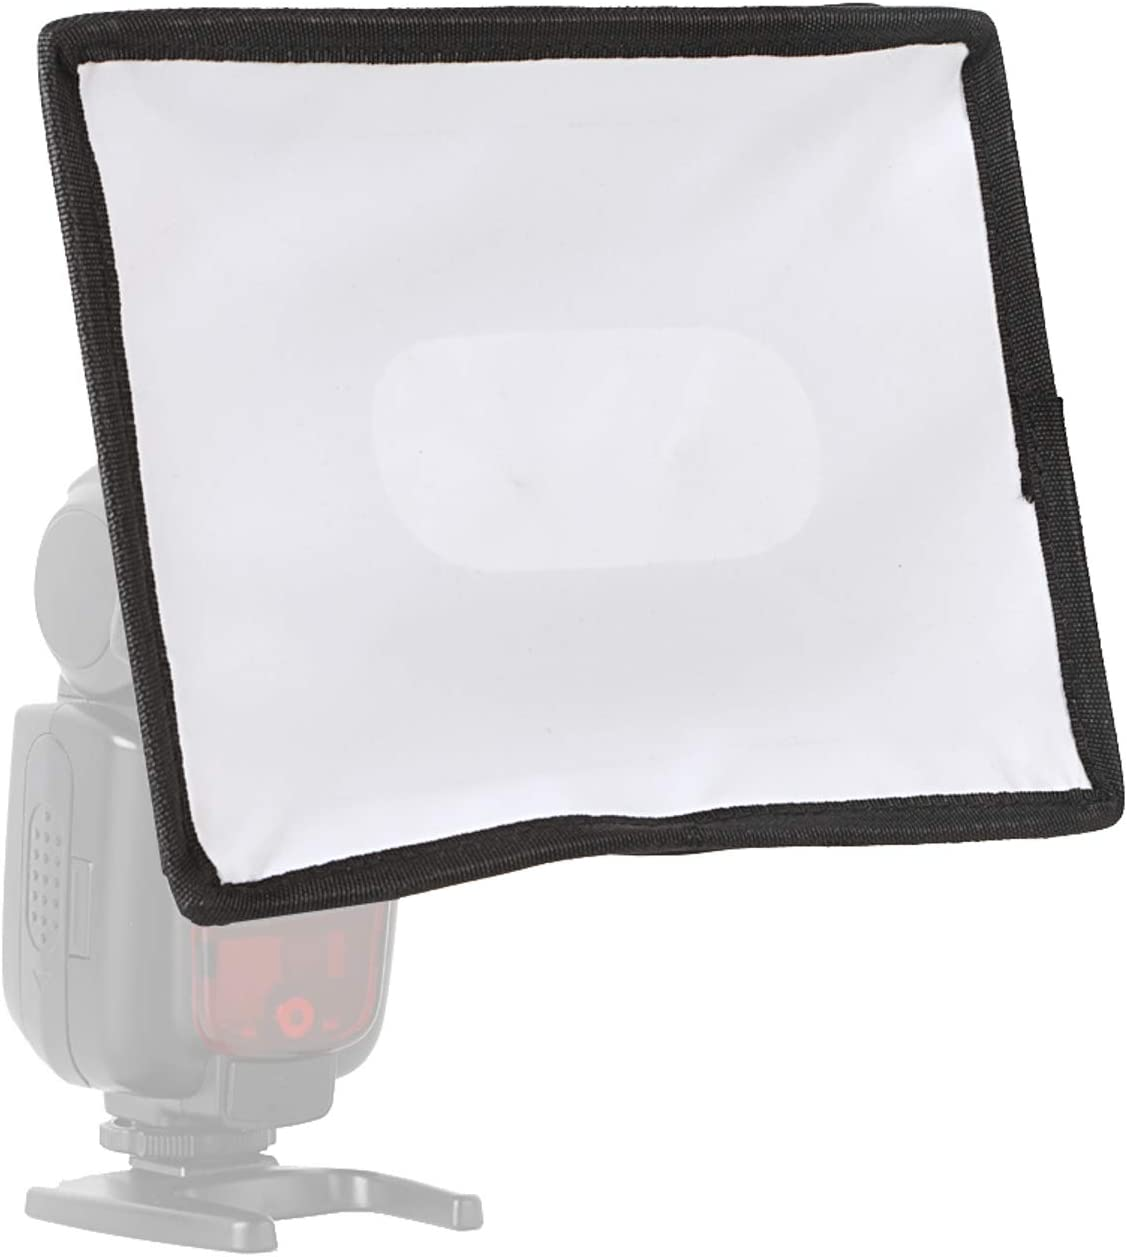 Mini Fabric Softbox with Roll-Up Windows for Extra Fill Light 6 x 8 inches Universal Fits Most Speedlight Easy Hood Flash Diffuser Light Softbox